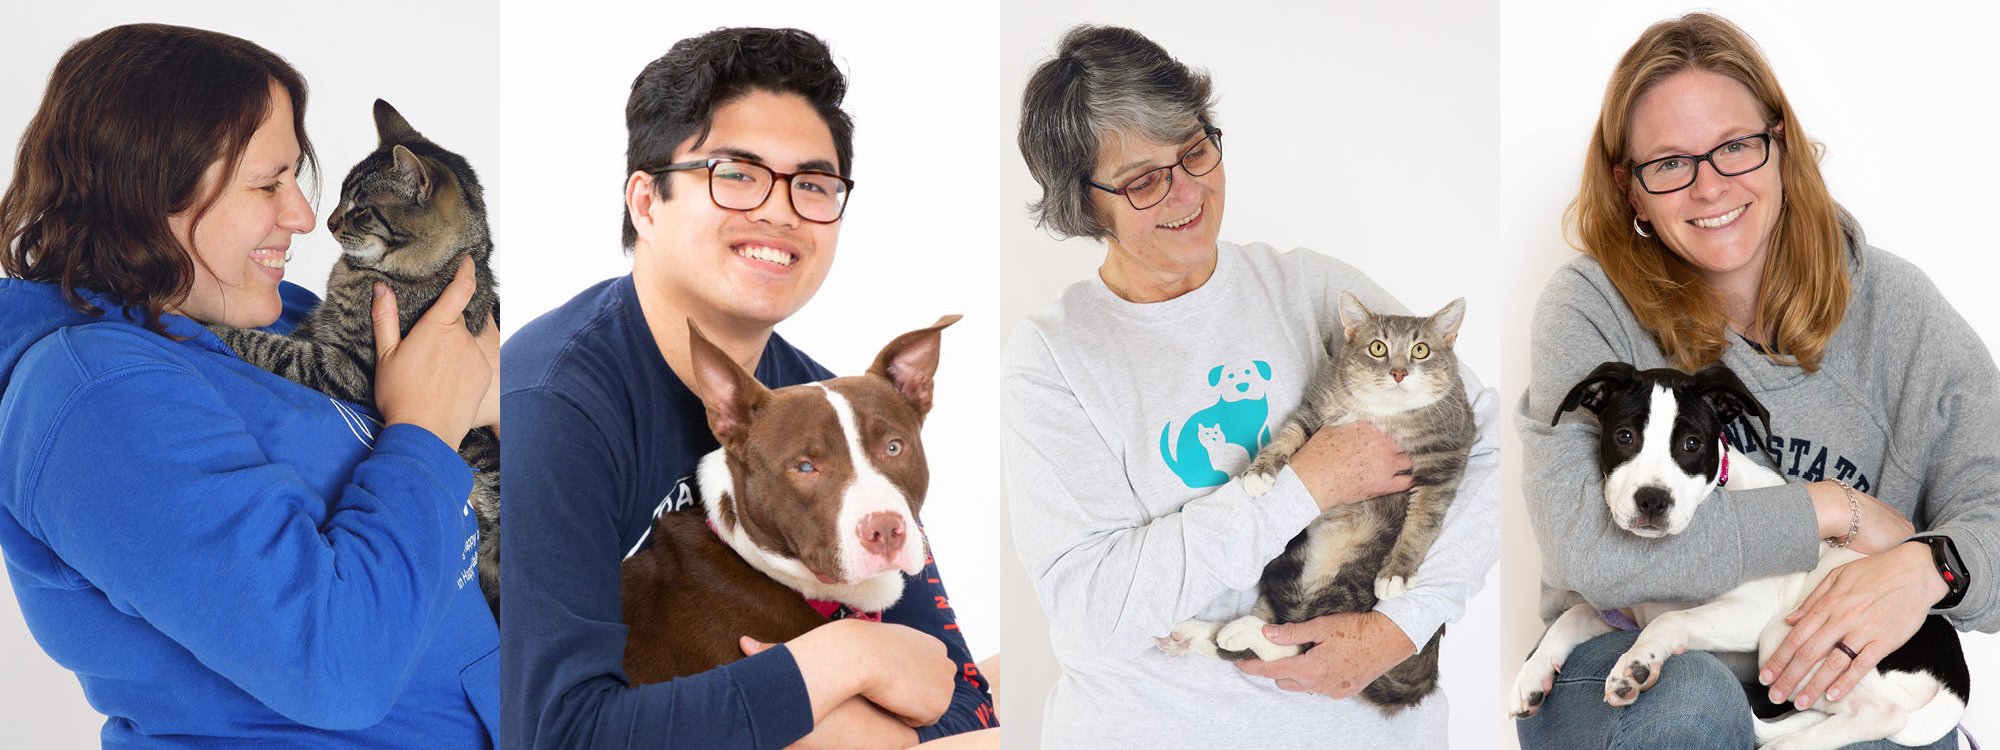 Collage of people holding animals in their arms